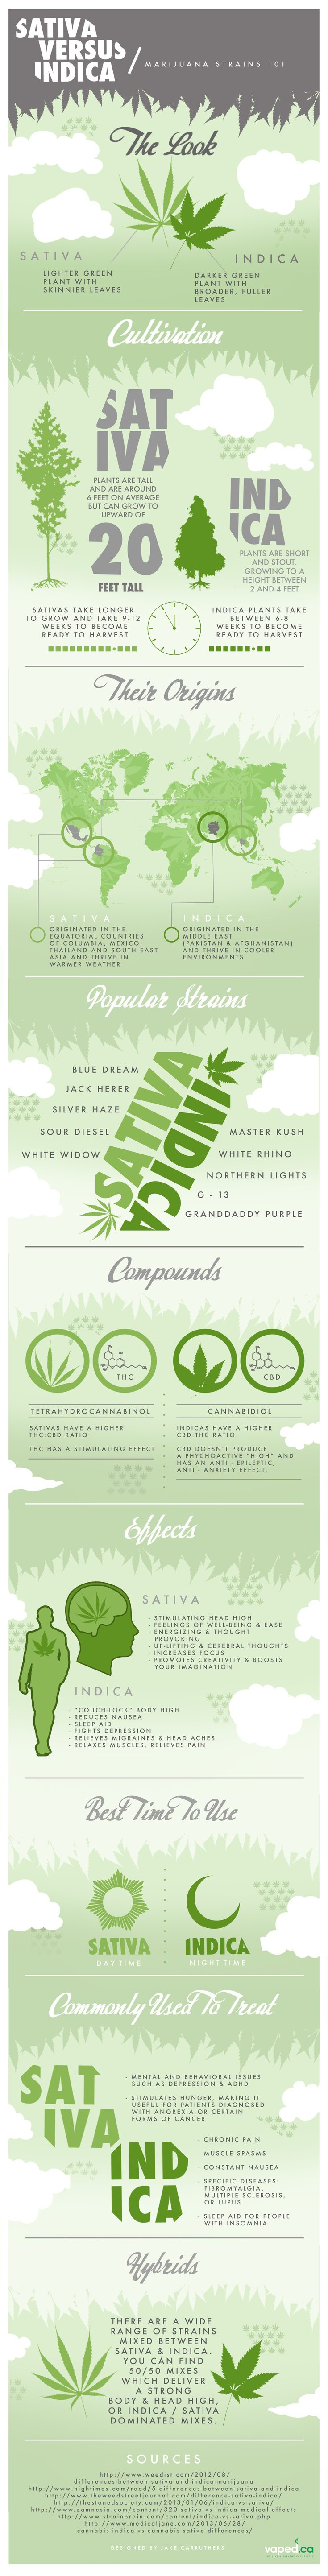 sativa_vs_indica_infographic